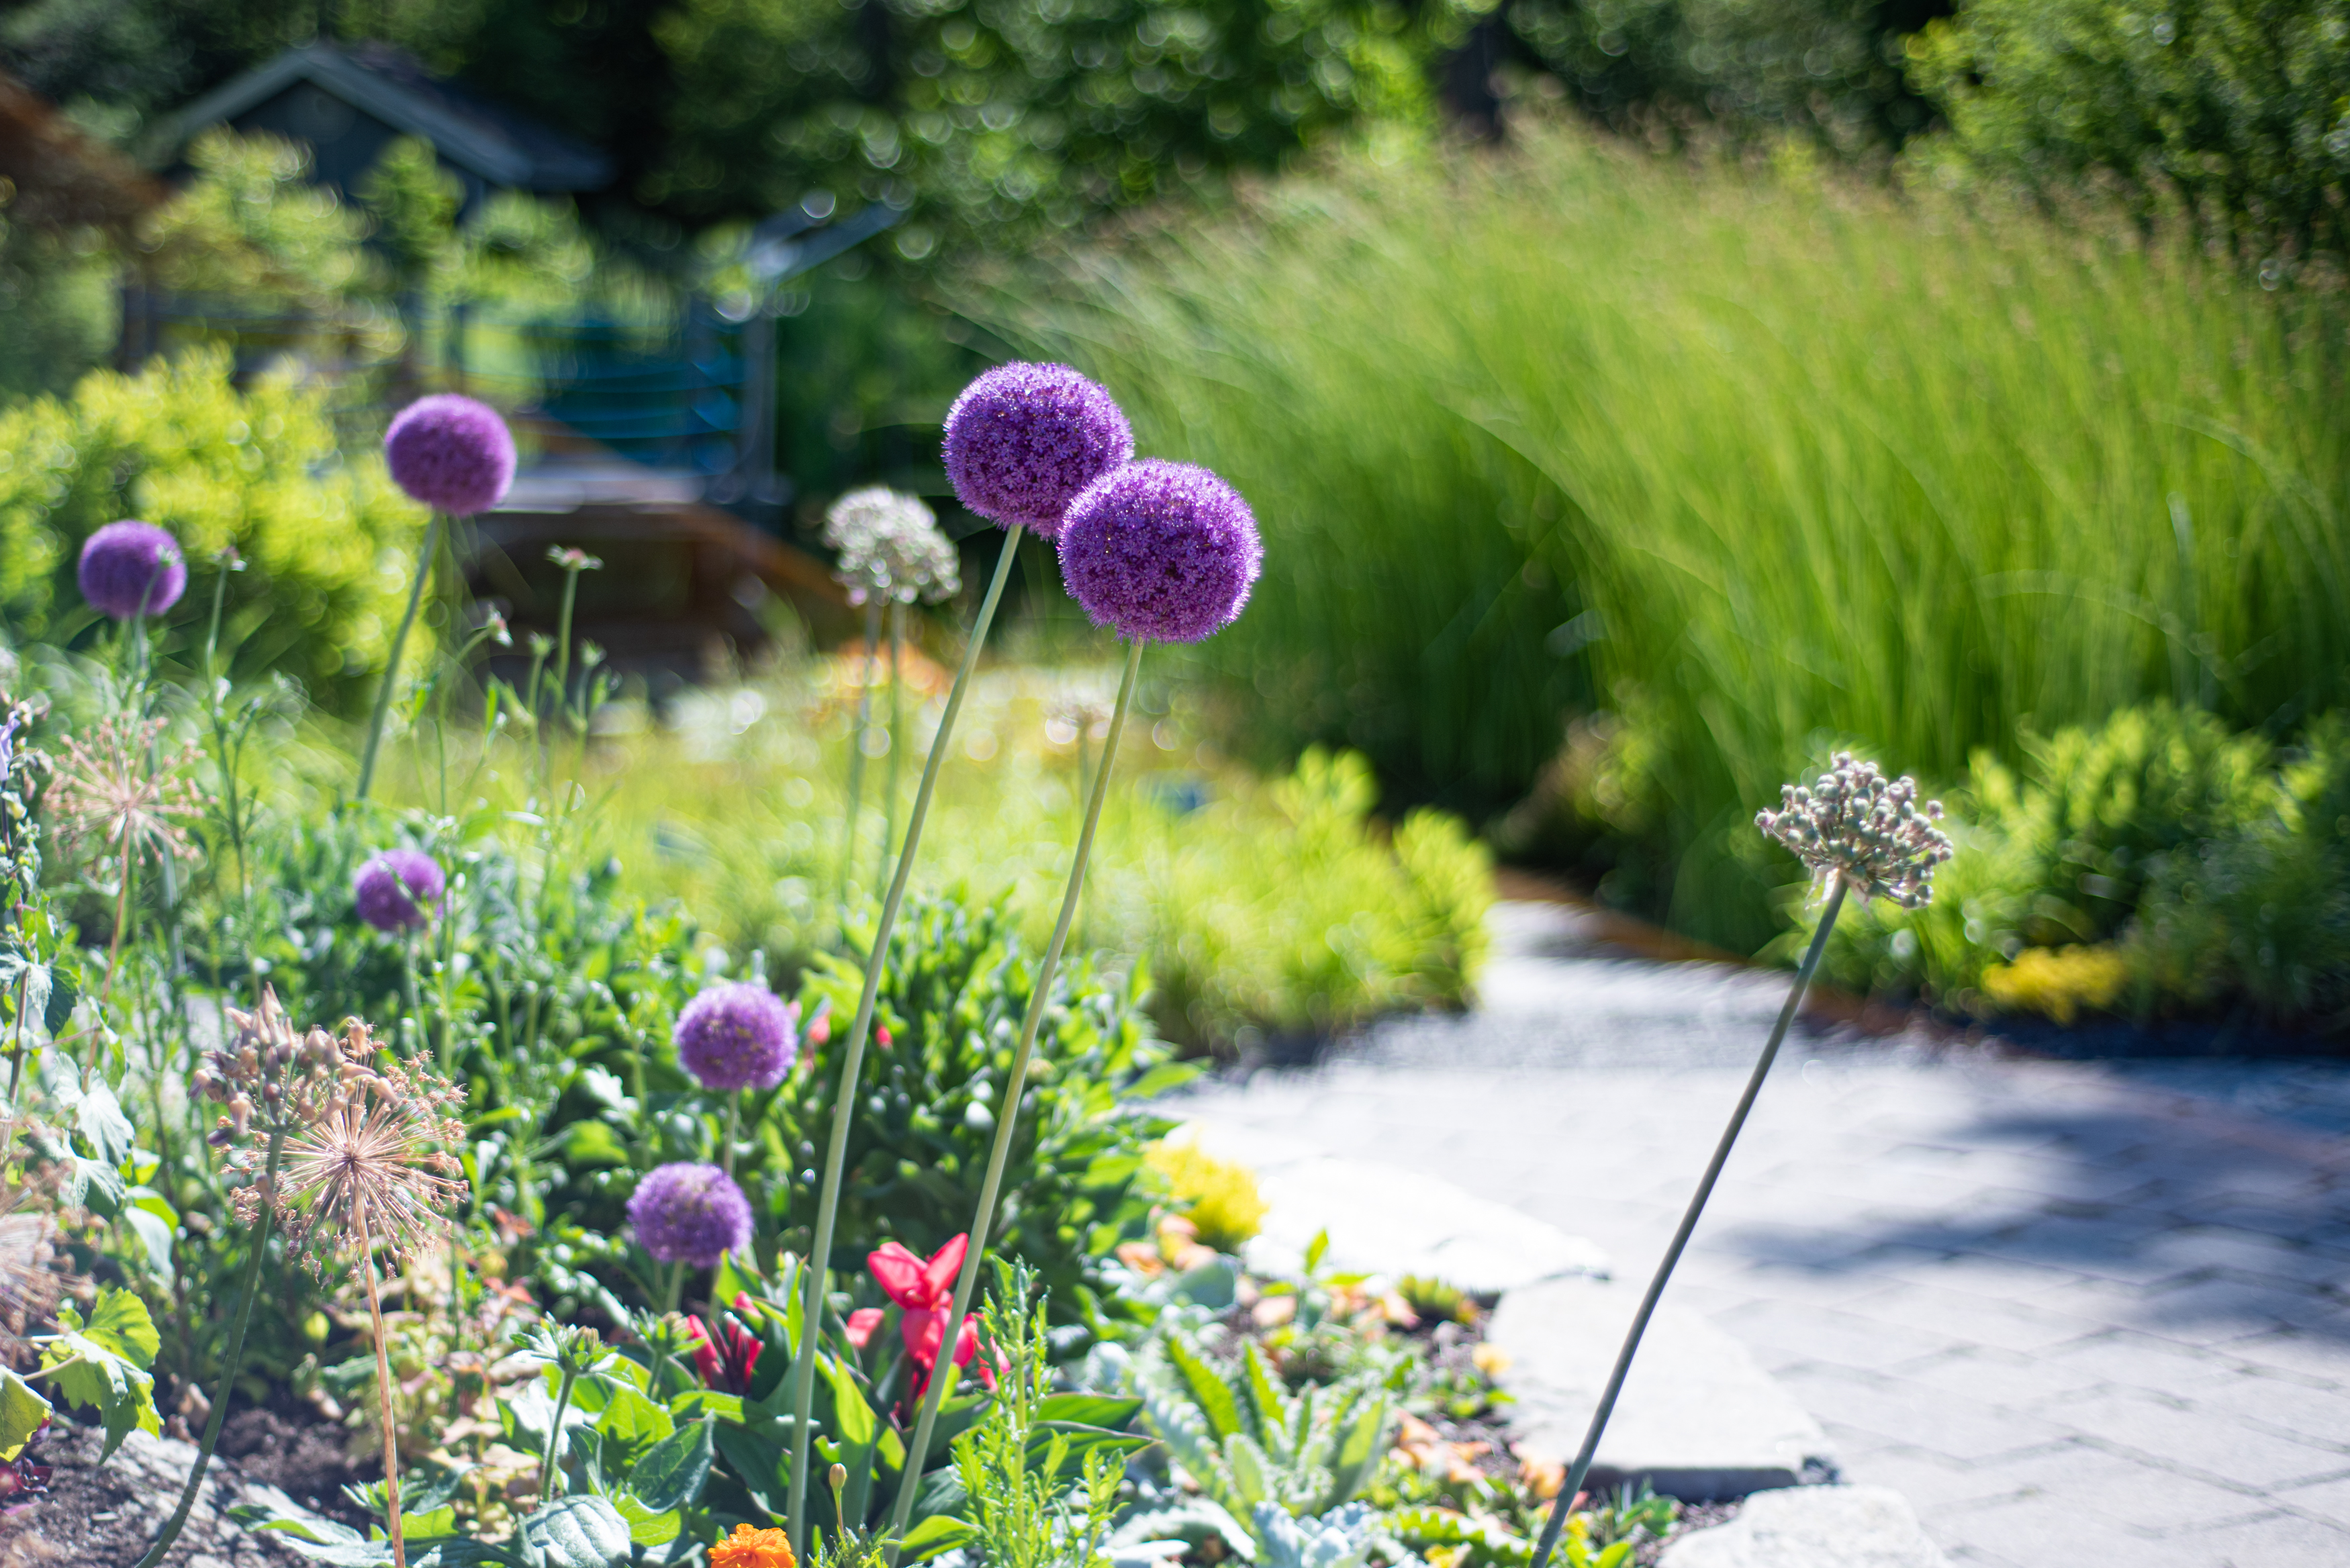 The purple ball-shaped flower of allium, or ornamental onion, in the Bibby and Harold Alfond Children's Garden